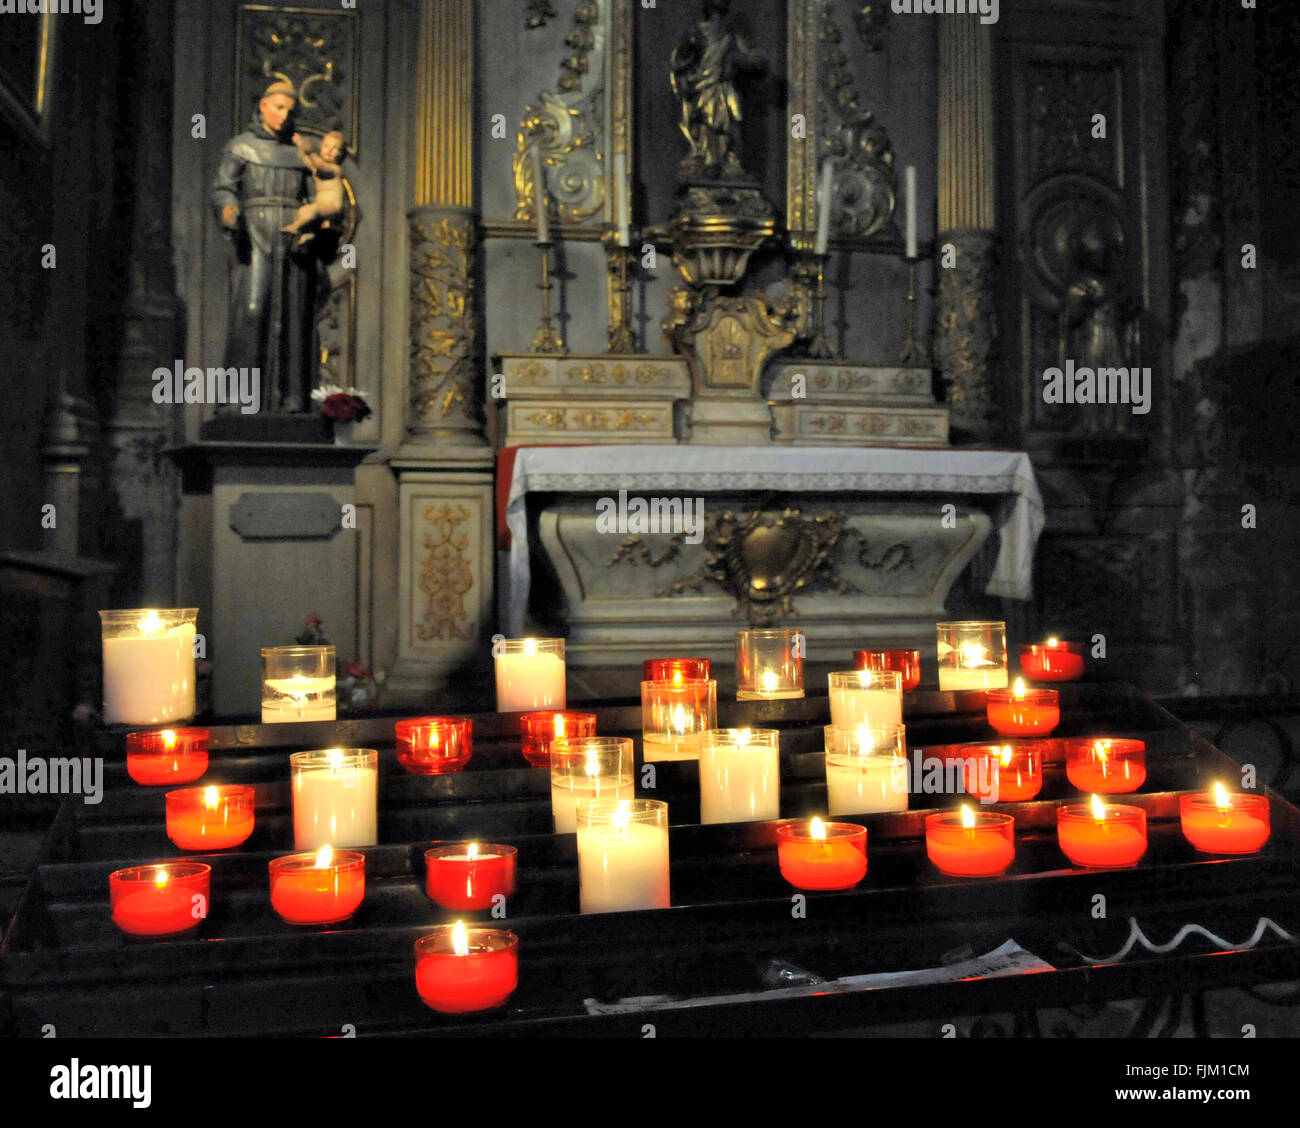 lit prayer candles in a catholic church - Stock Image & Lit Prayer Candles Stock Photos u0026 Lit Prayer Candles Stock Images ...